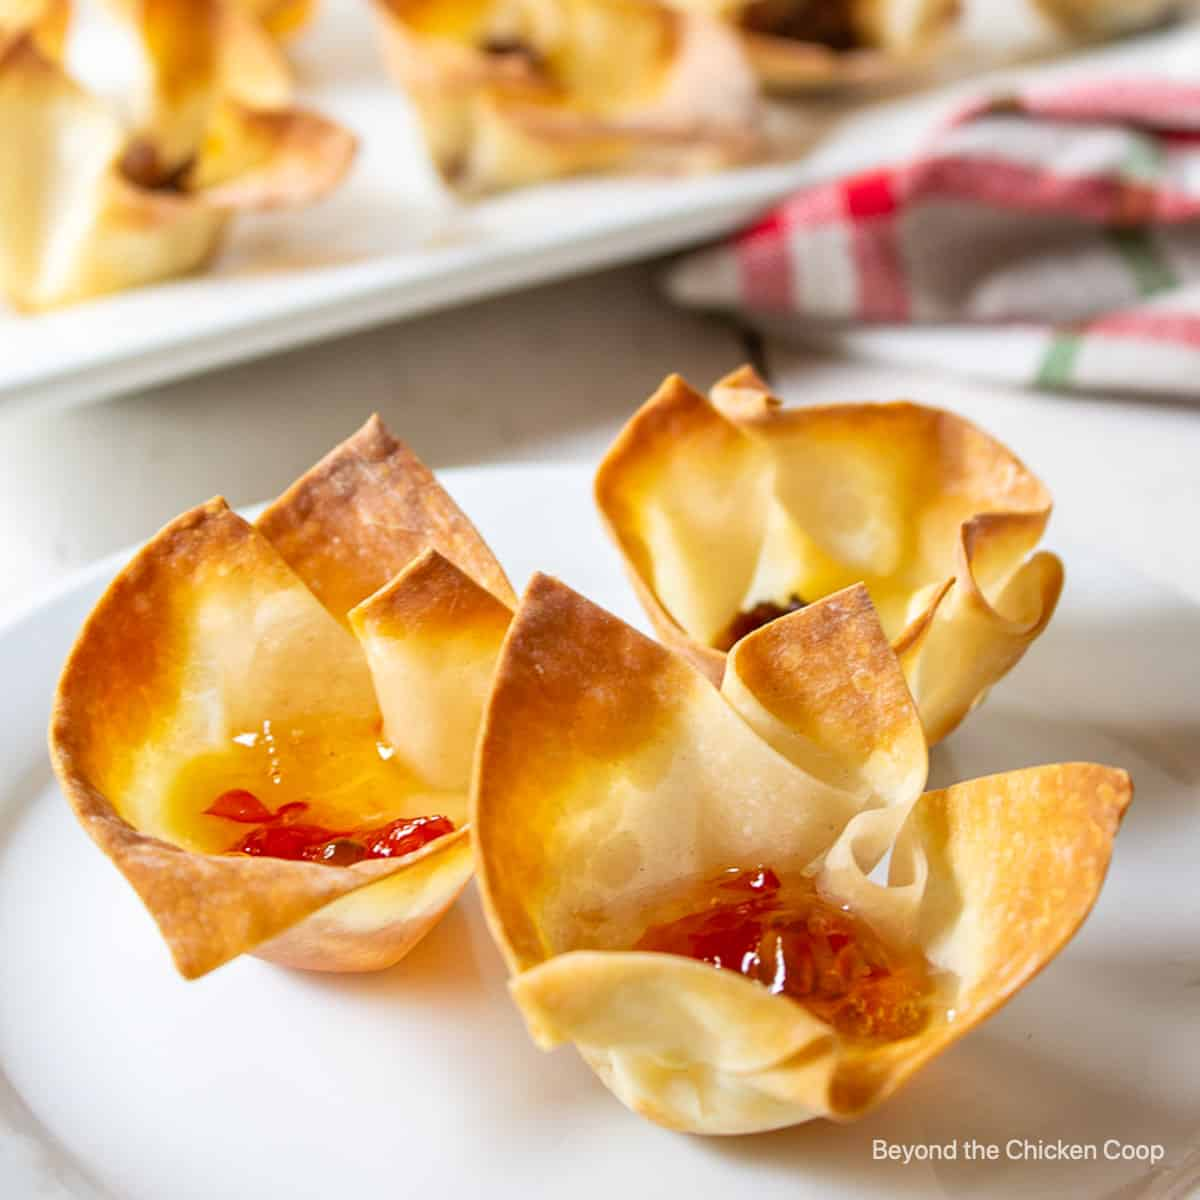 Wonton cups filled with cheese and pepper jelly.